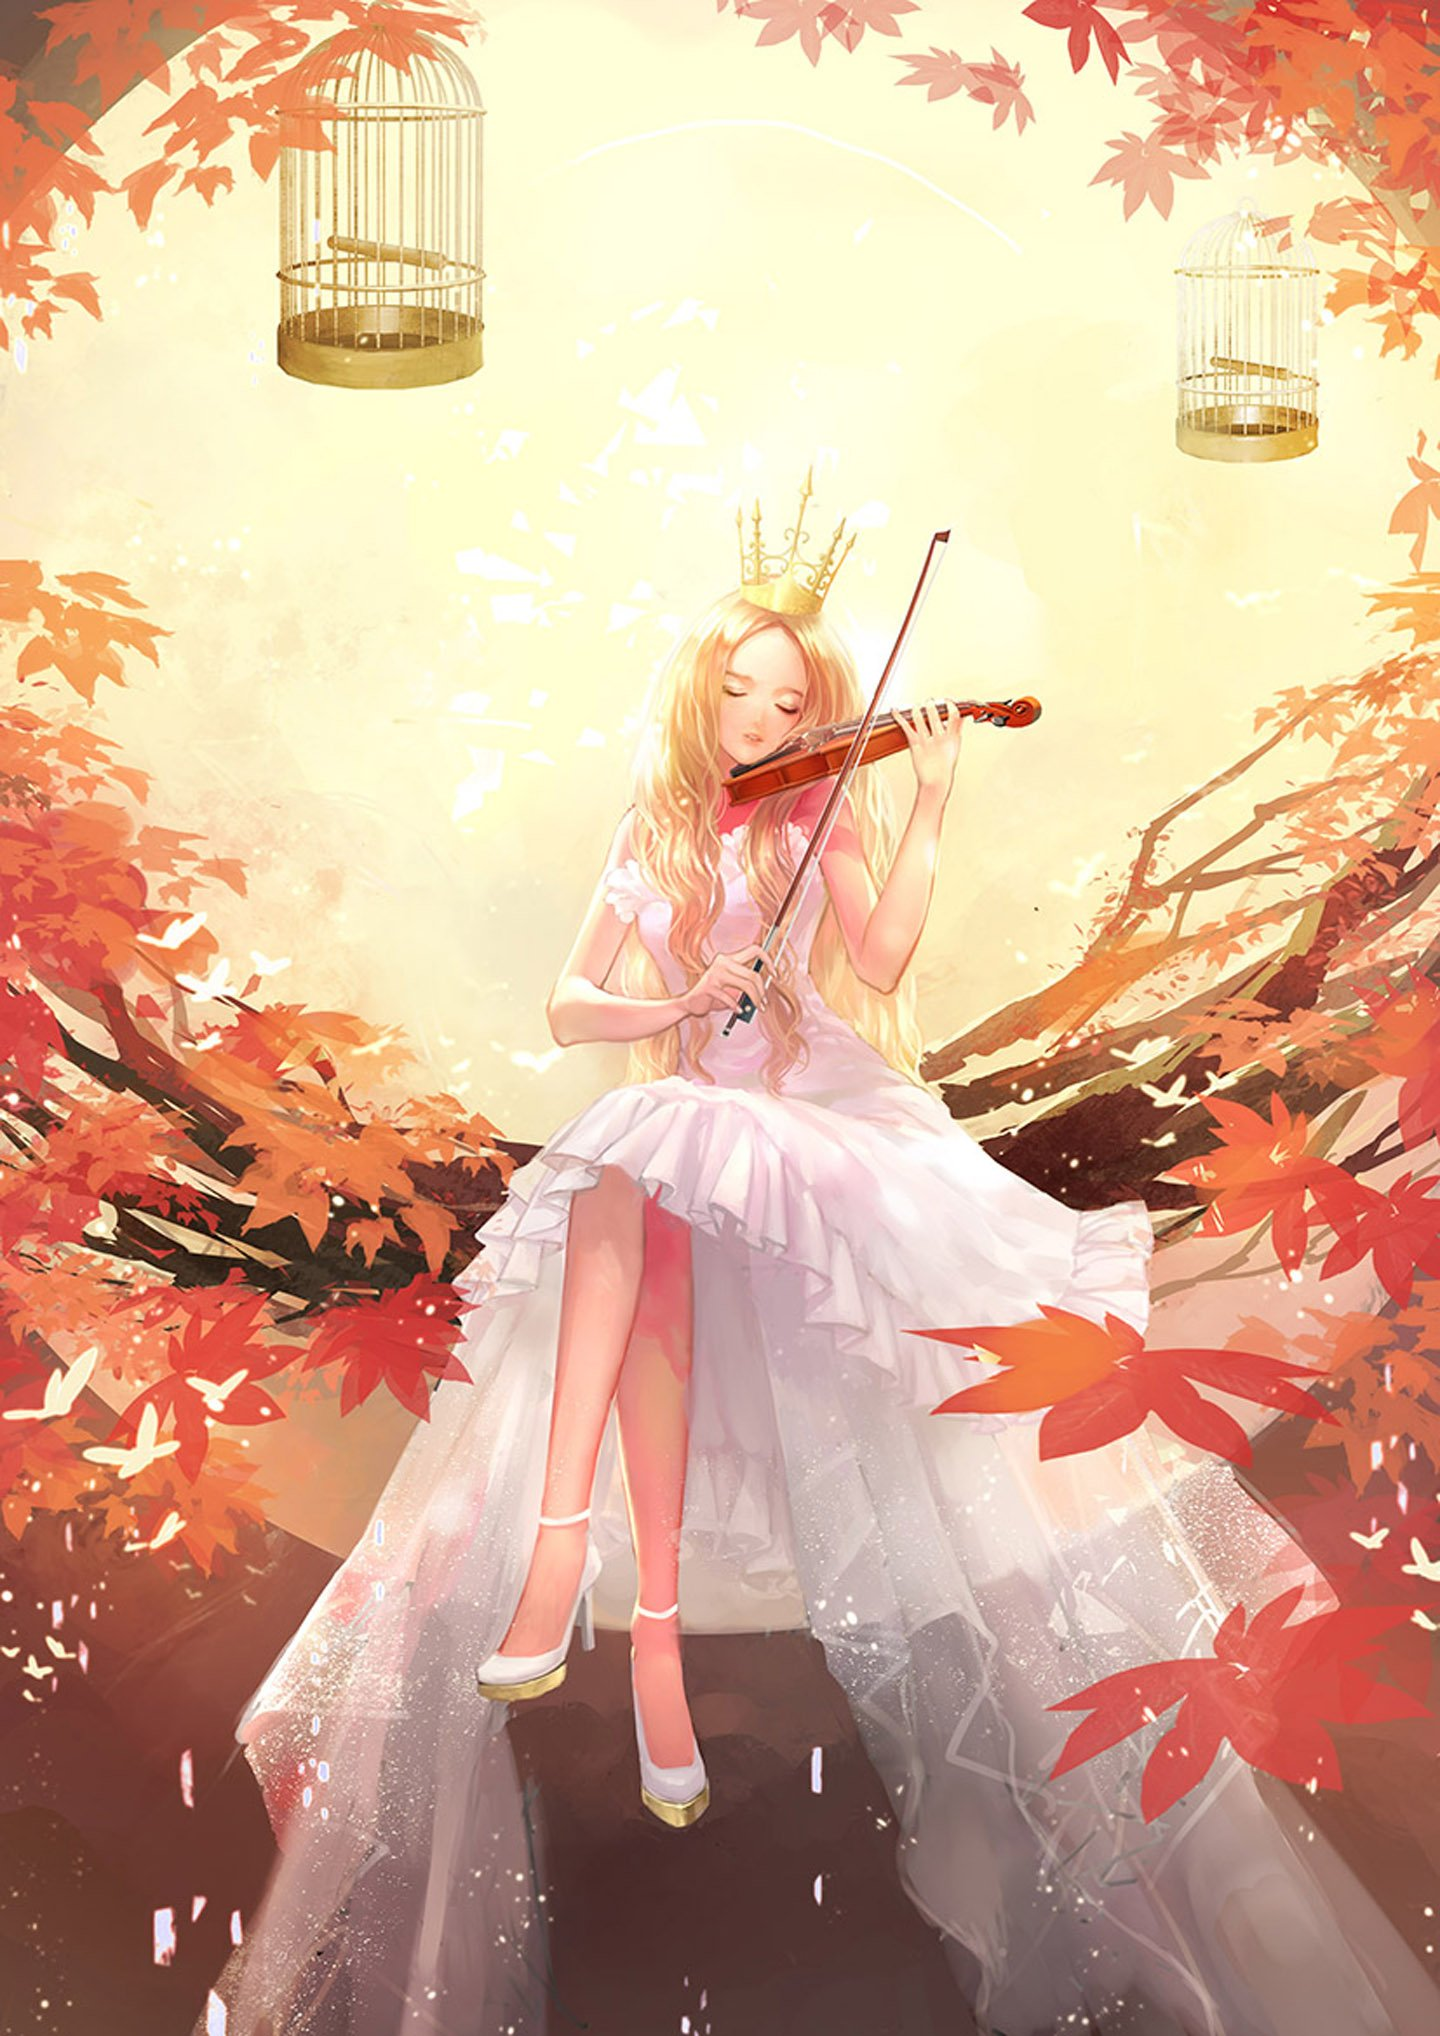 Free Animated Falling Leaves Wallpaper Original Anime Girl Violin Music Tree Autumn Dress Long